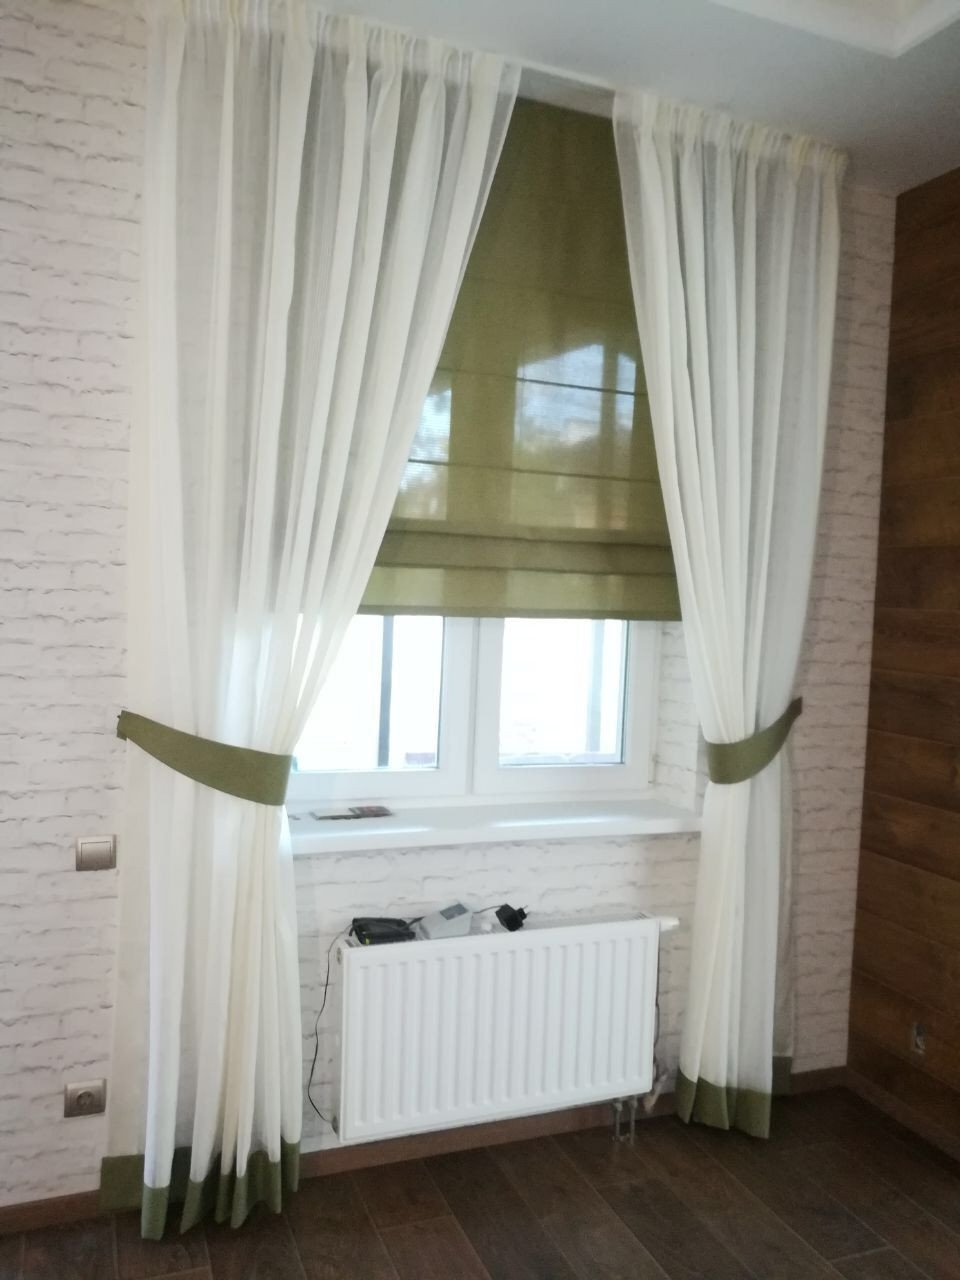 Curtain Styles for Bedroom Elegant Pin About Curtains Curtains with Blinds and Curtain Designs